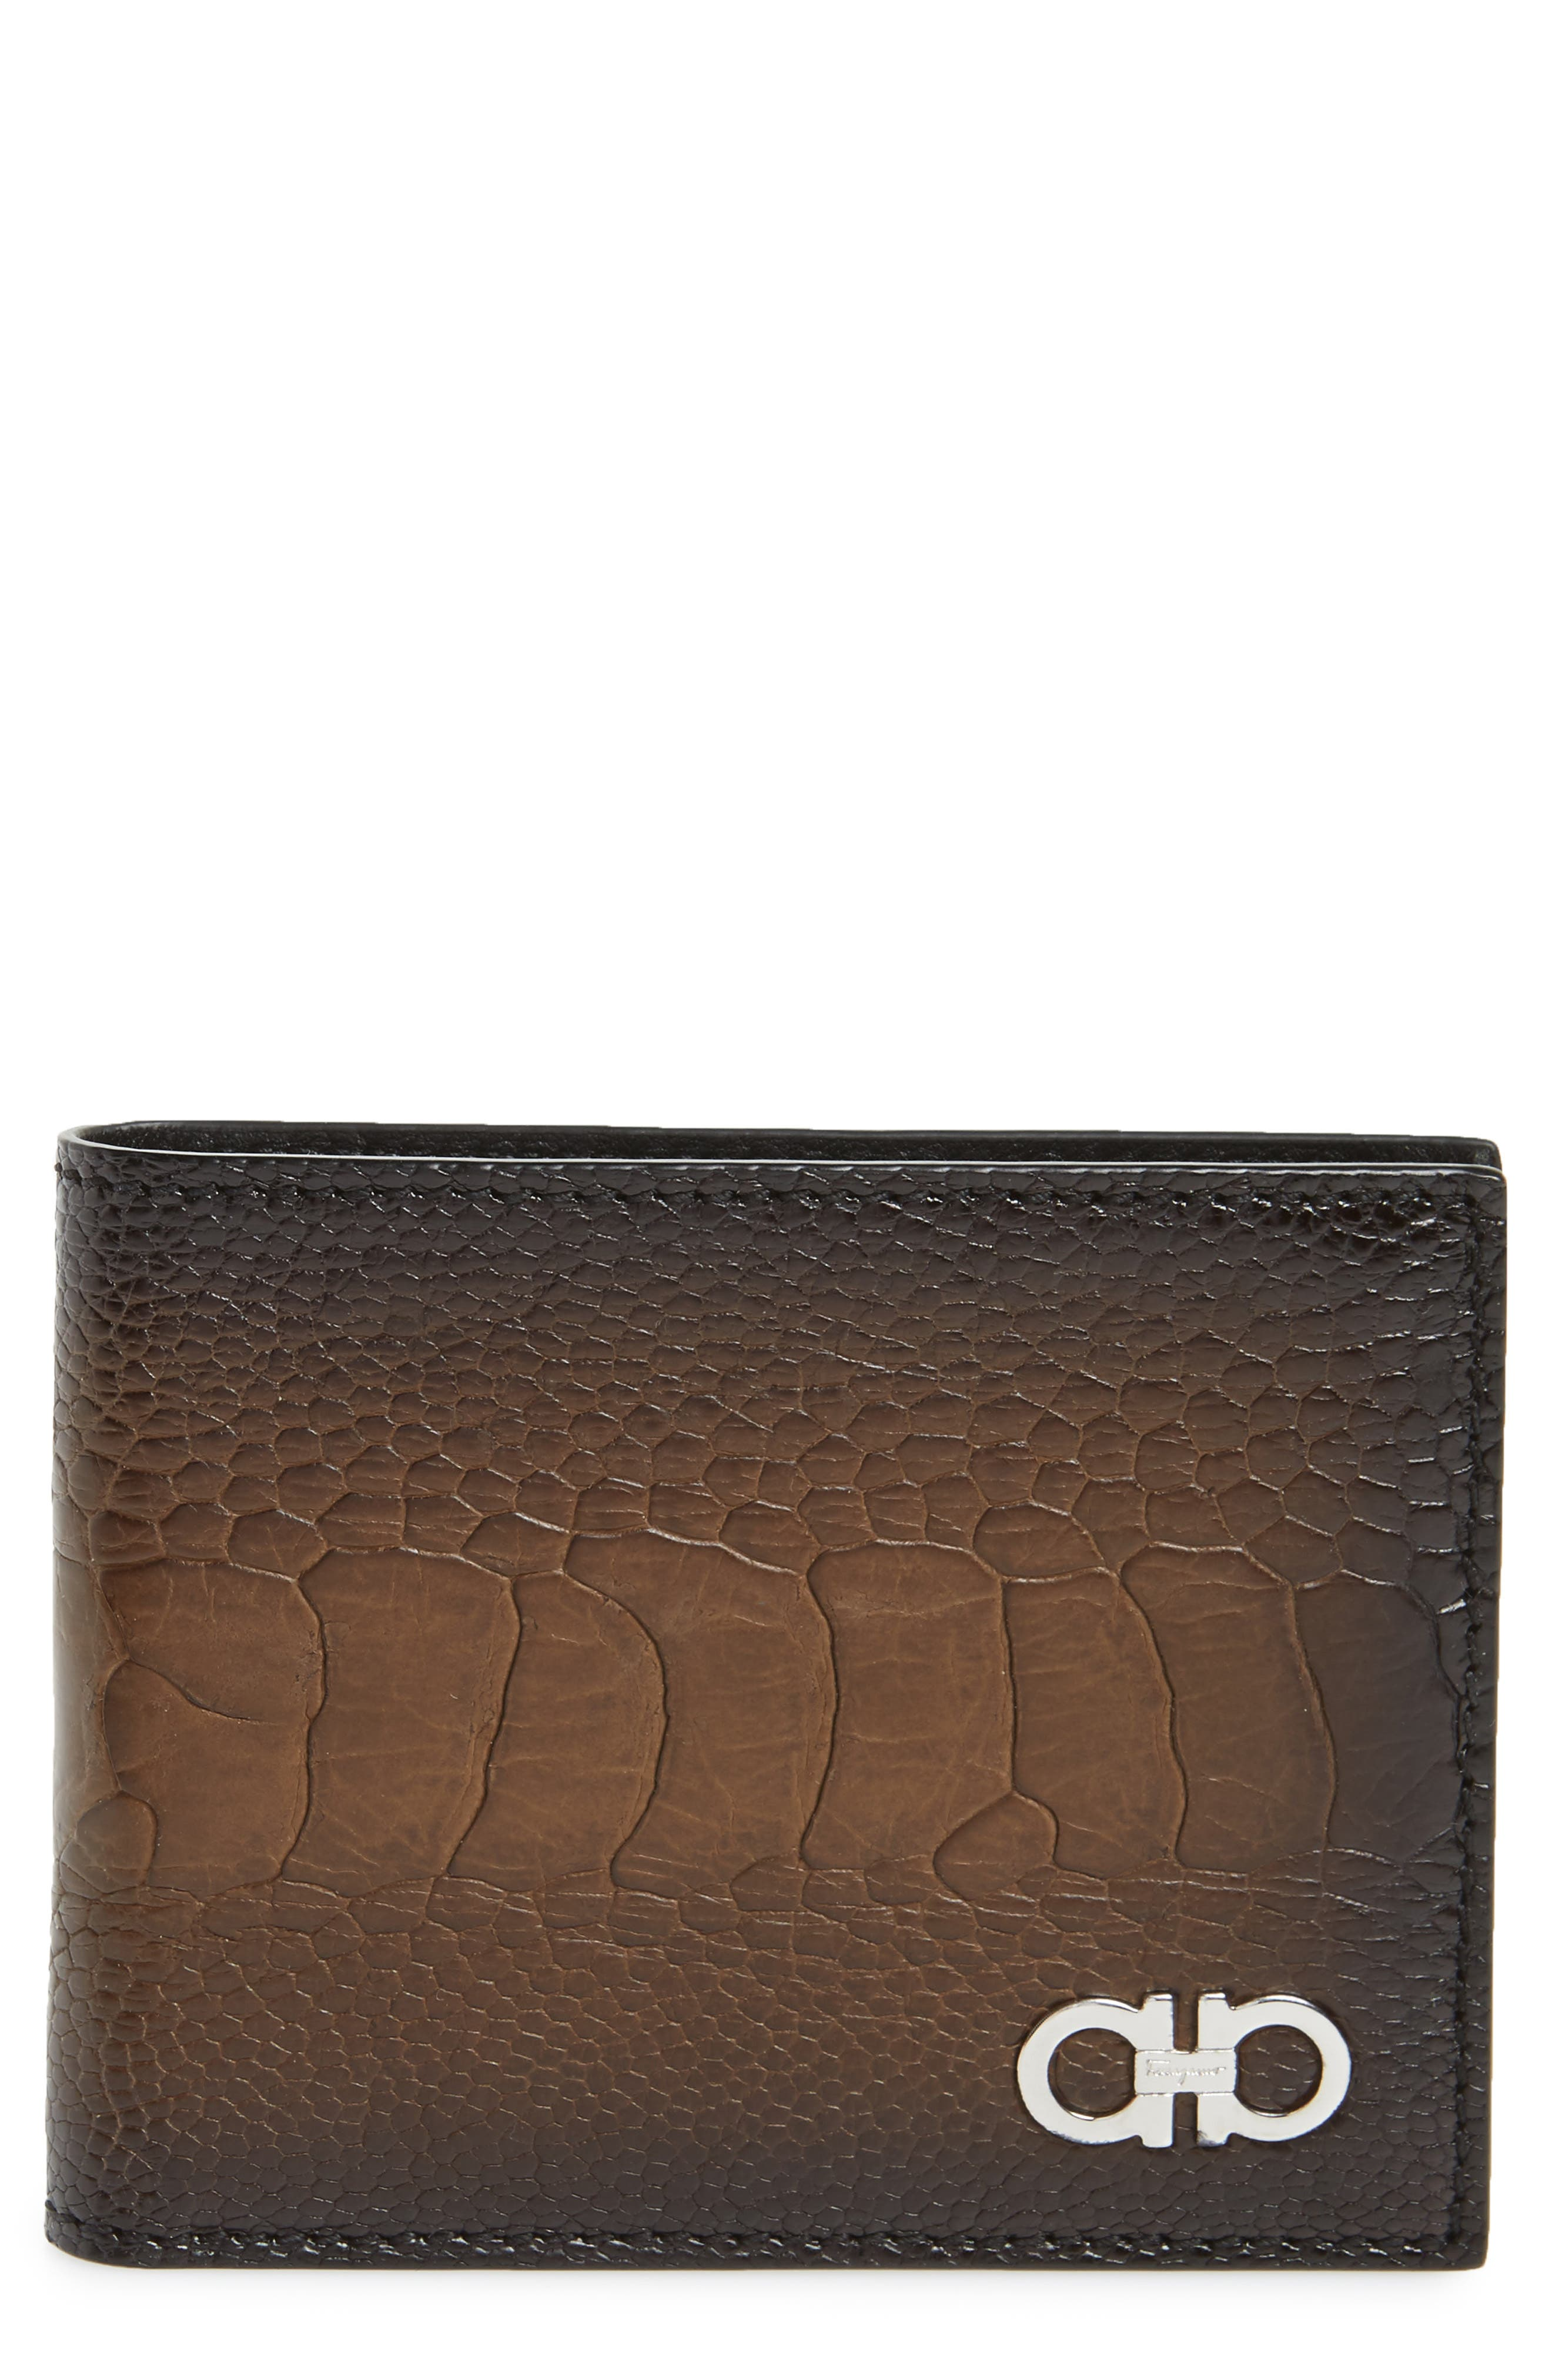 Leather Wallet,                         Main,                         color, Sepia